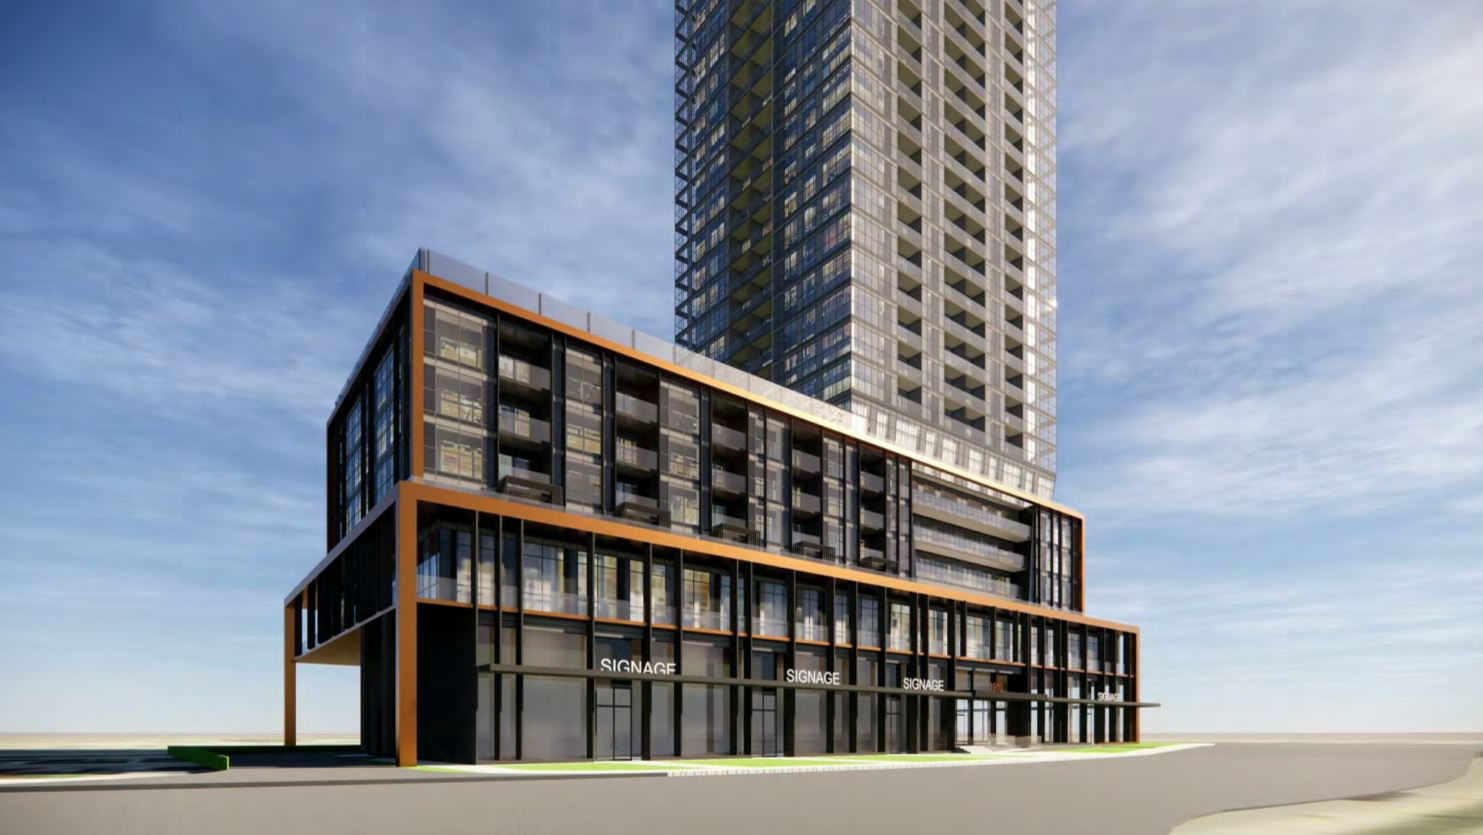 Rendering of 1910 Eglinton East Condos podium and streetscape.